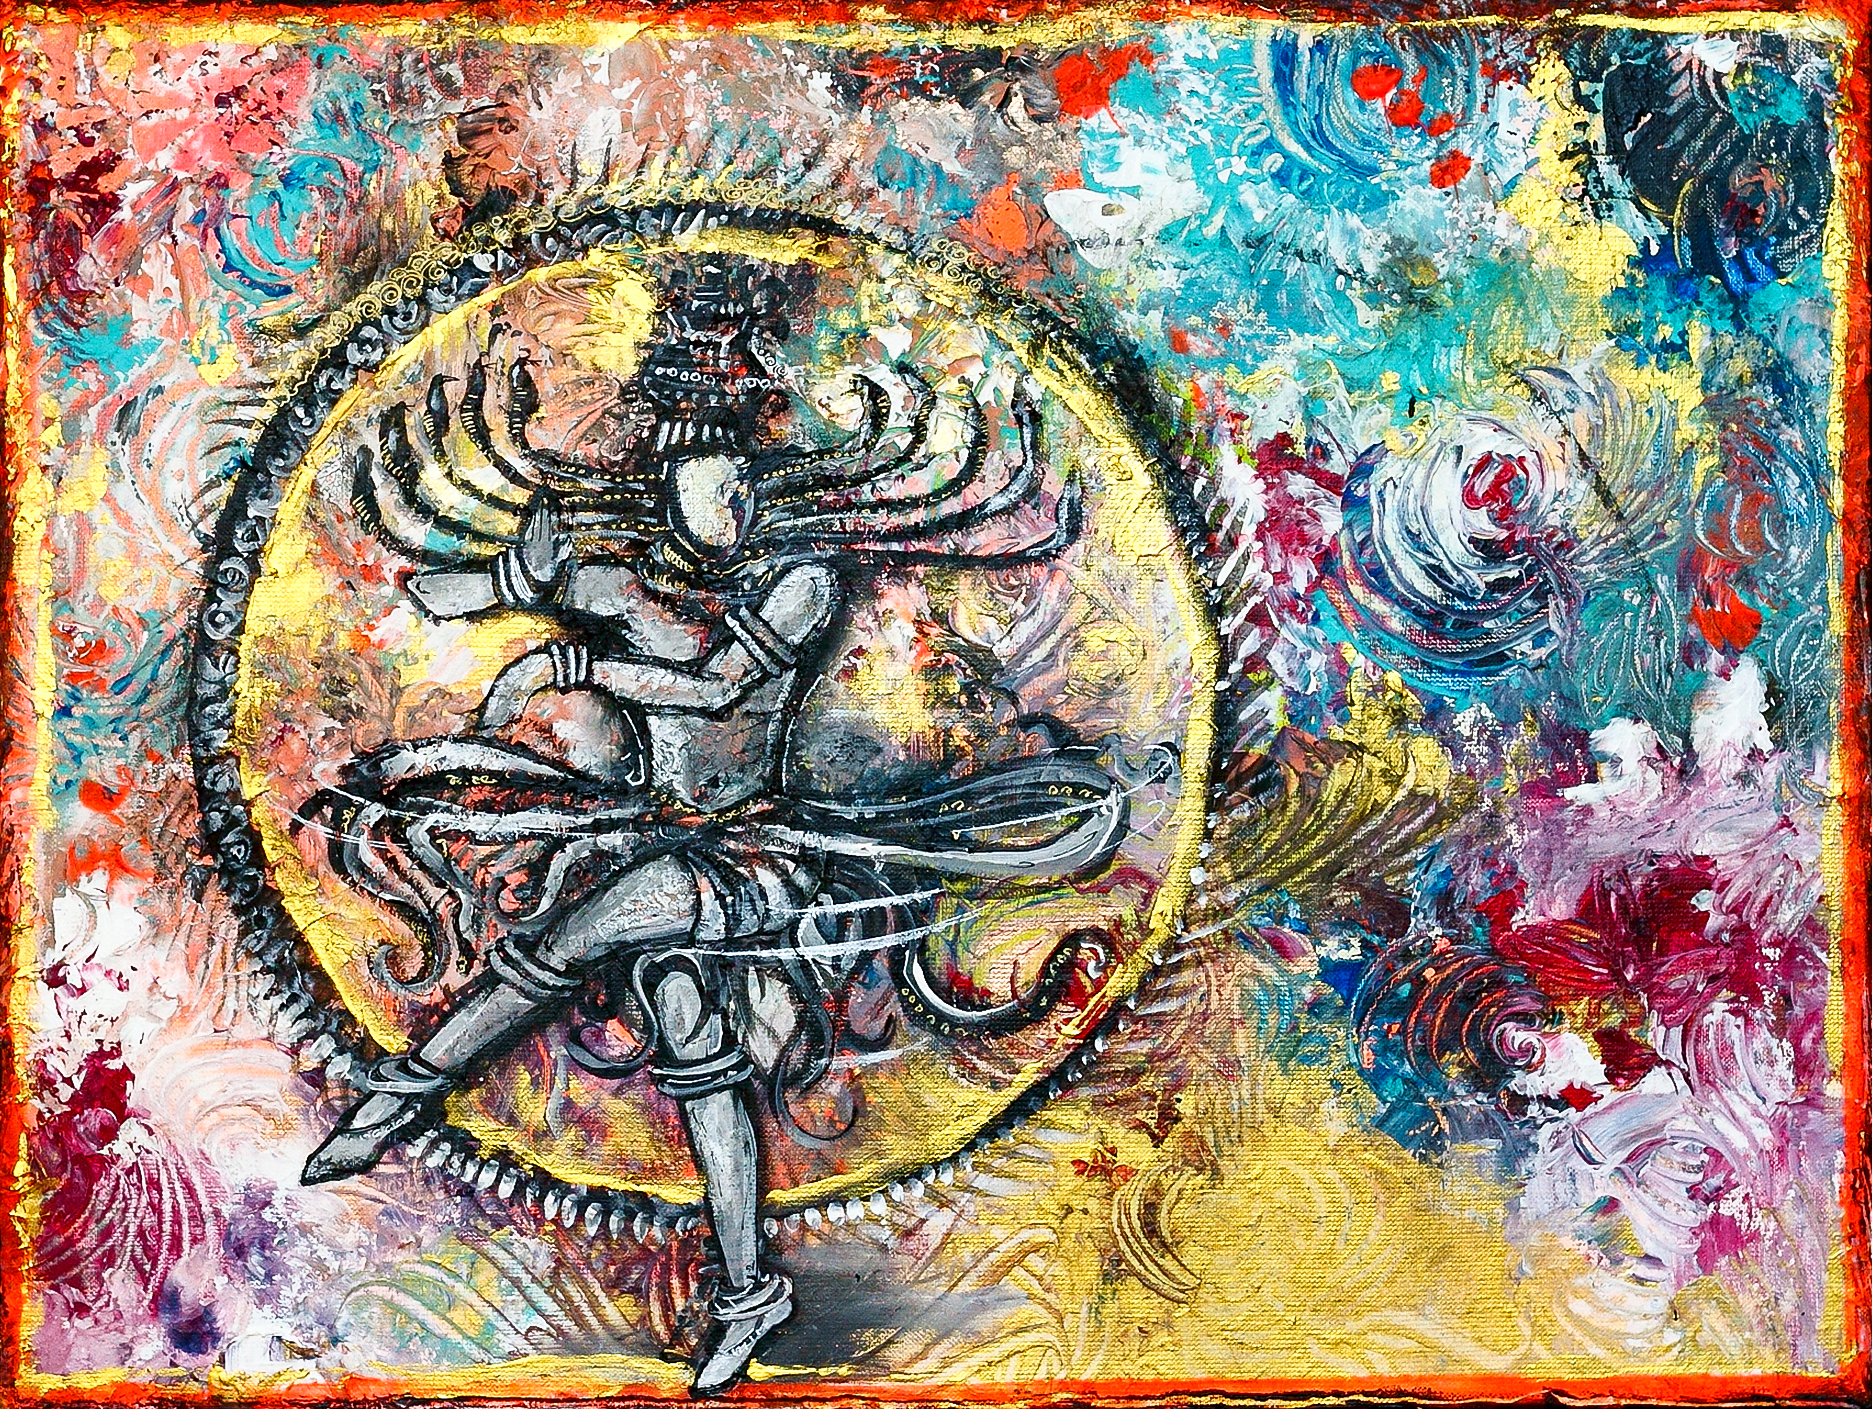 Dance of chaos (sold)